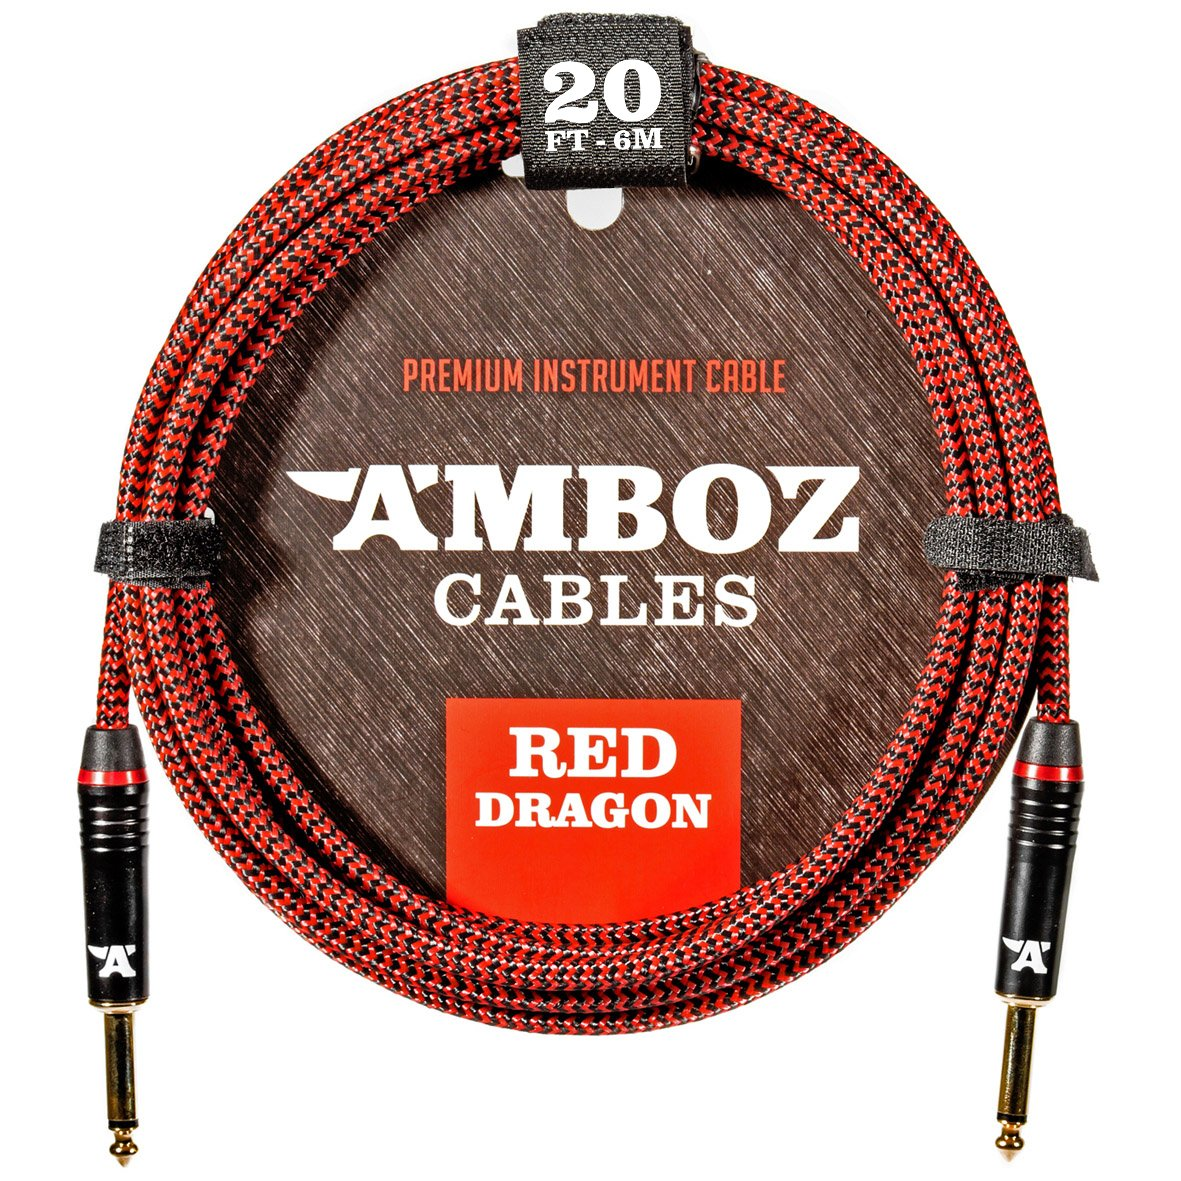 Red Dragon Instrument Cable - Noiseless for Electric Guitar and Bass - 20Foot TS 1/4Inch Straight PL by AMBOZ CABLES (Image #1)